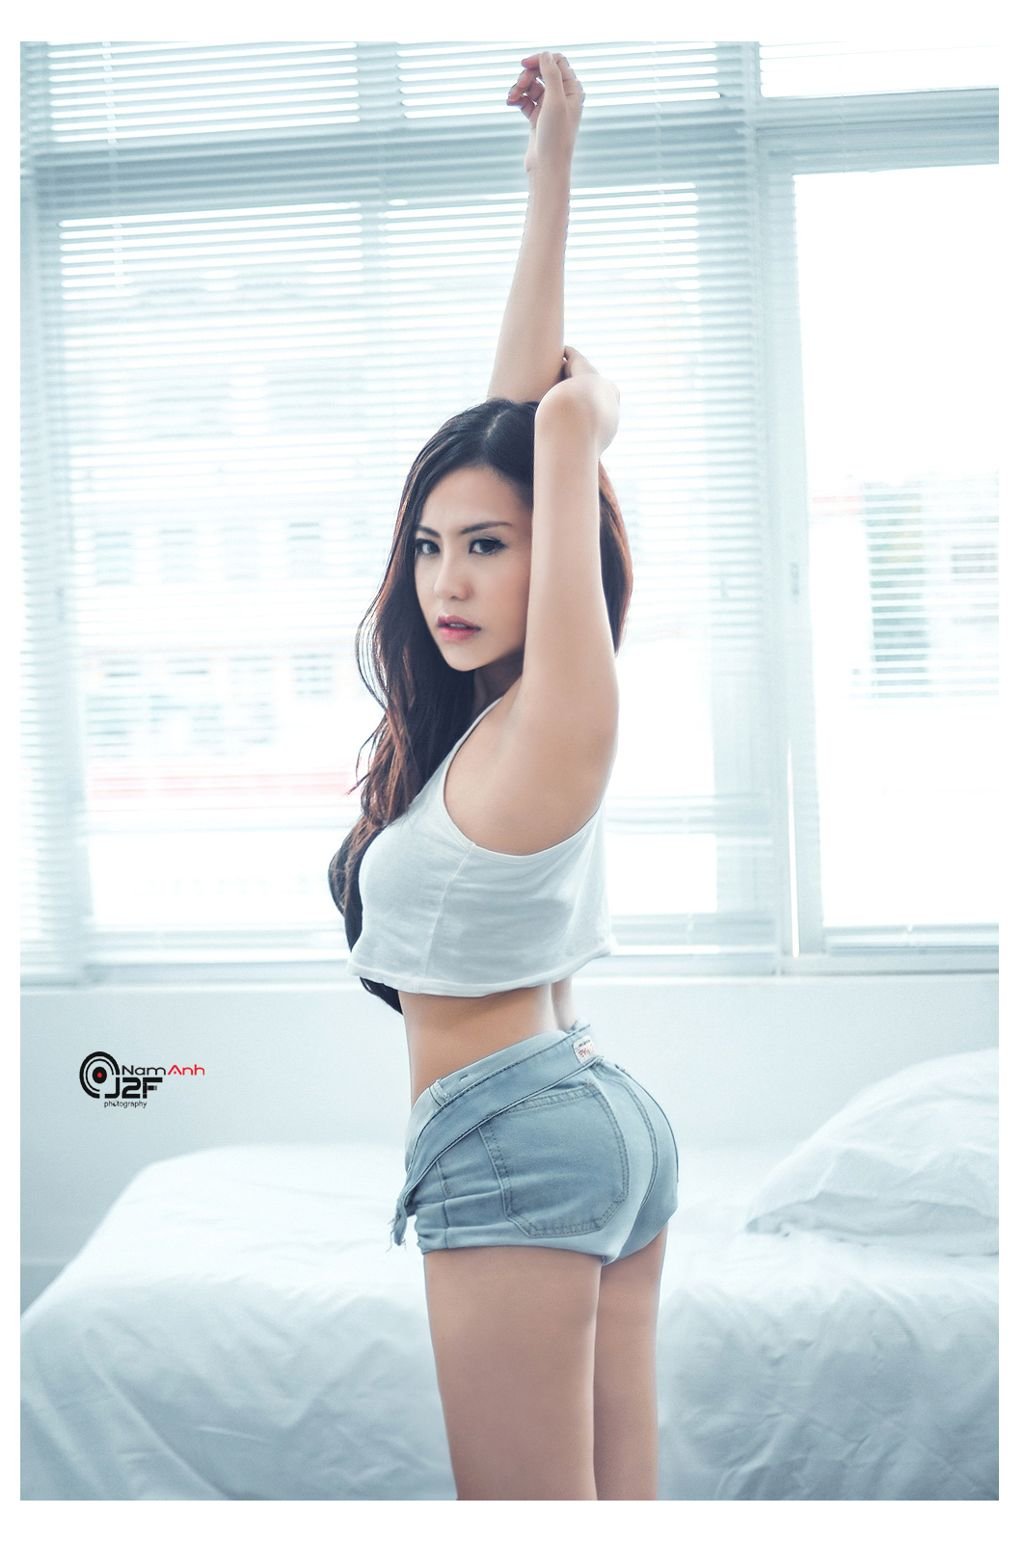 Image-Vietnamese-Model-Sexy-Beauty-of-Beautiful-Girls-Taken-by-NamAnh-Photography-3-TruePic.net- Picture-8